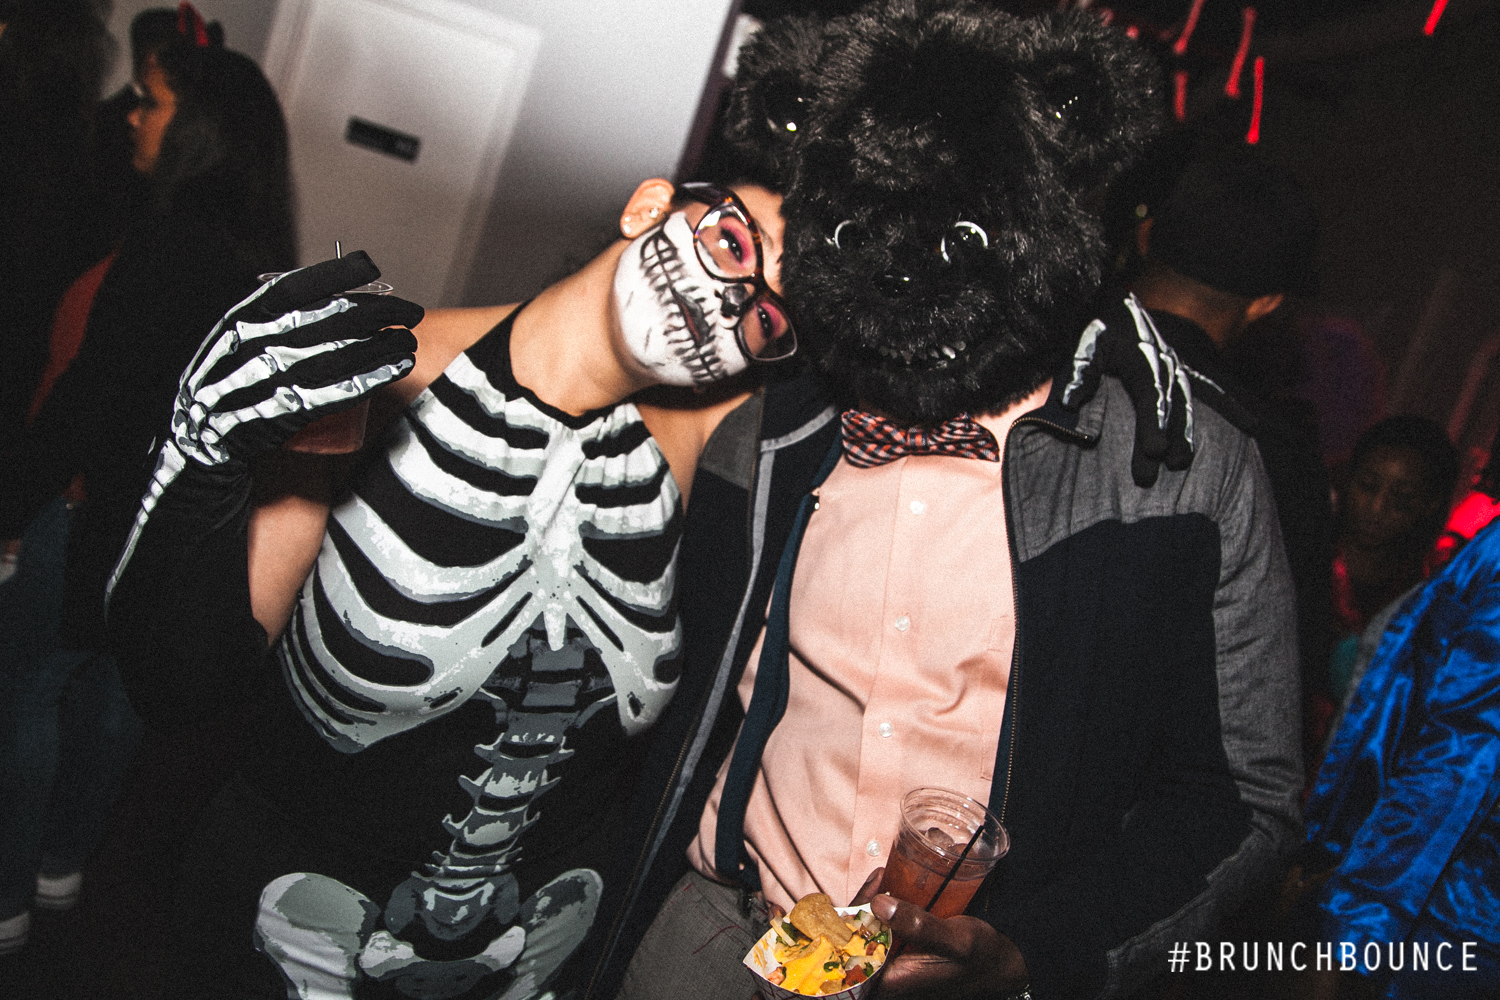 brunch-bounce-x-adidas-originals-halloween-103115_22132417504_o.jpg